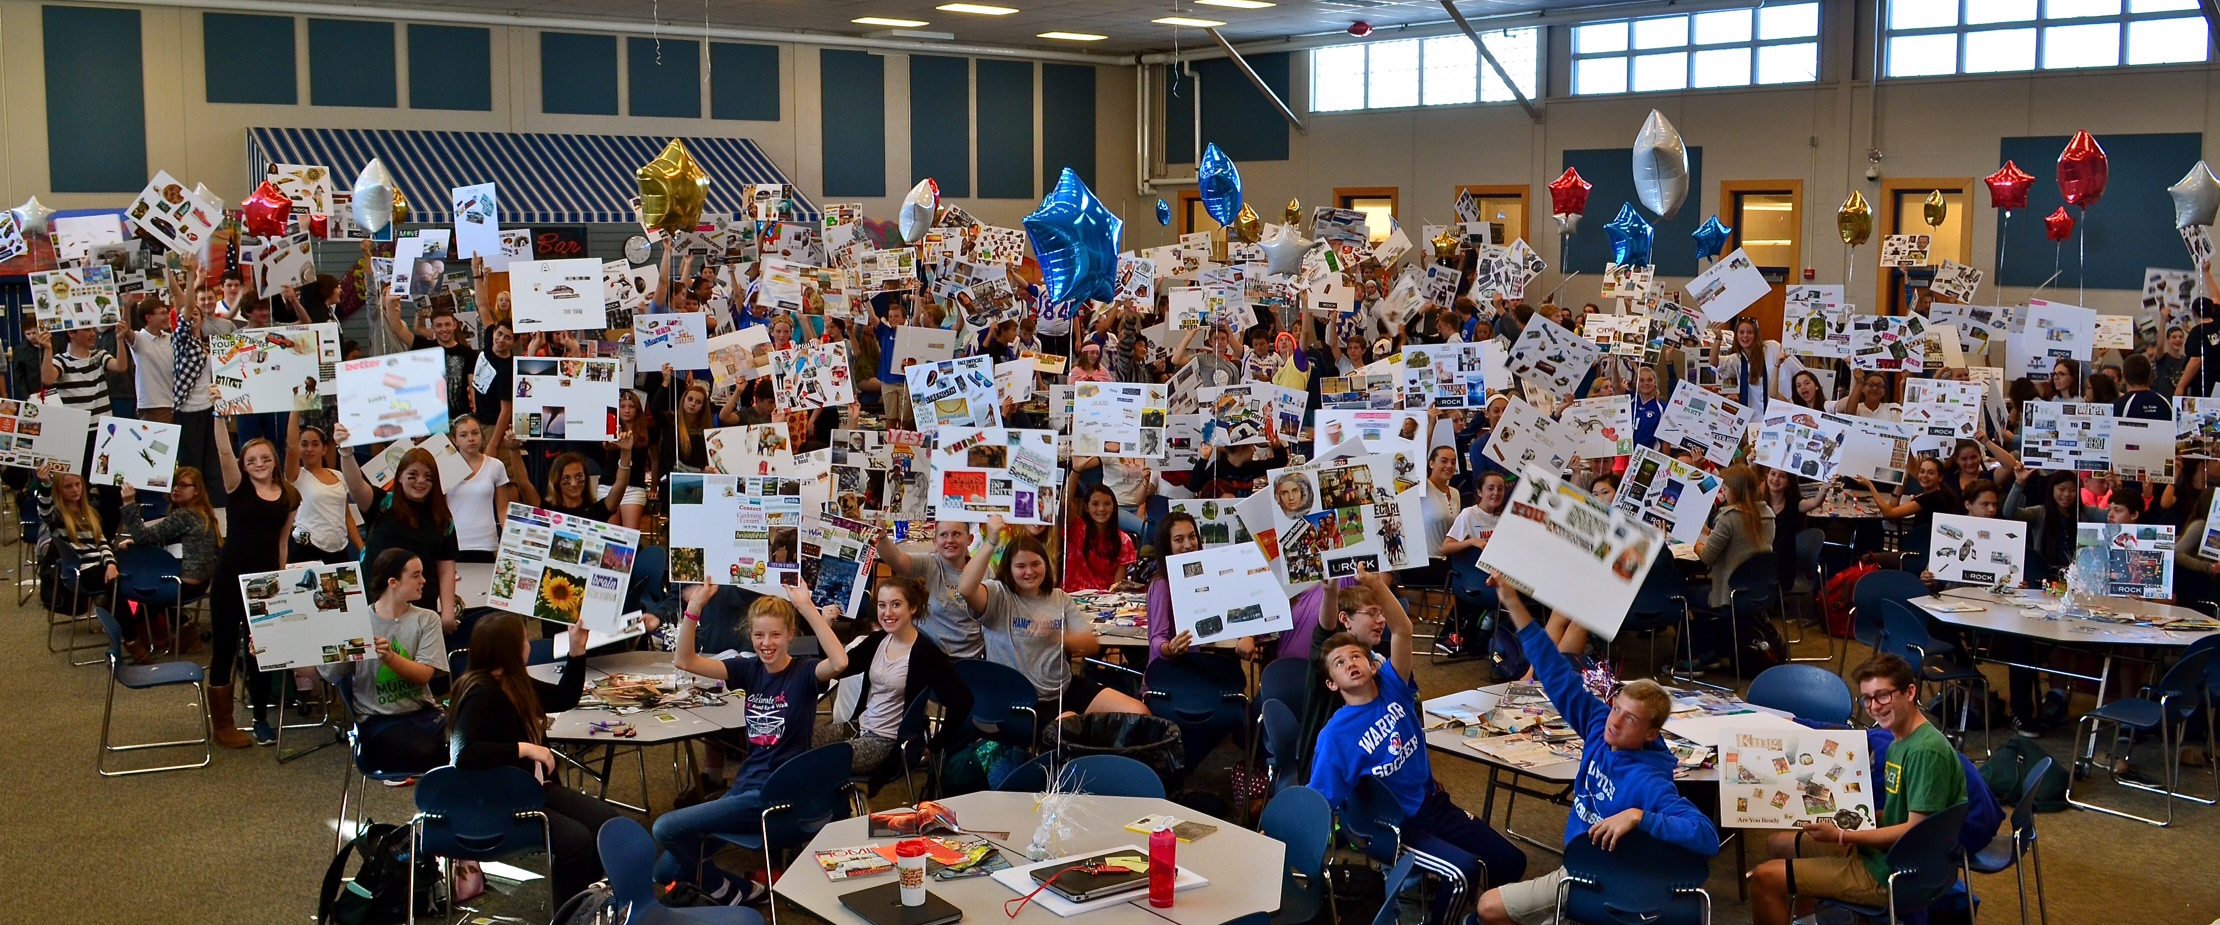 MILESTONE: The Largest  UROCK VISION BOARD PARTY  ™  eve! (9/24/15) at Winnacunnet High School (Hampton, NH). The entire Freshman class of 265 students were dreaming big and set for success to take on their new school year!  This epic UROCK experience was captured by Miles C. Woodworth of Seacoast Flash.